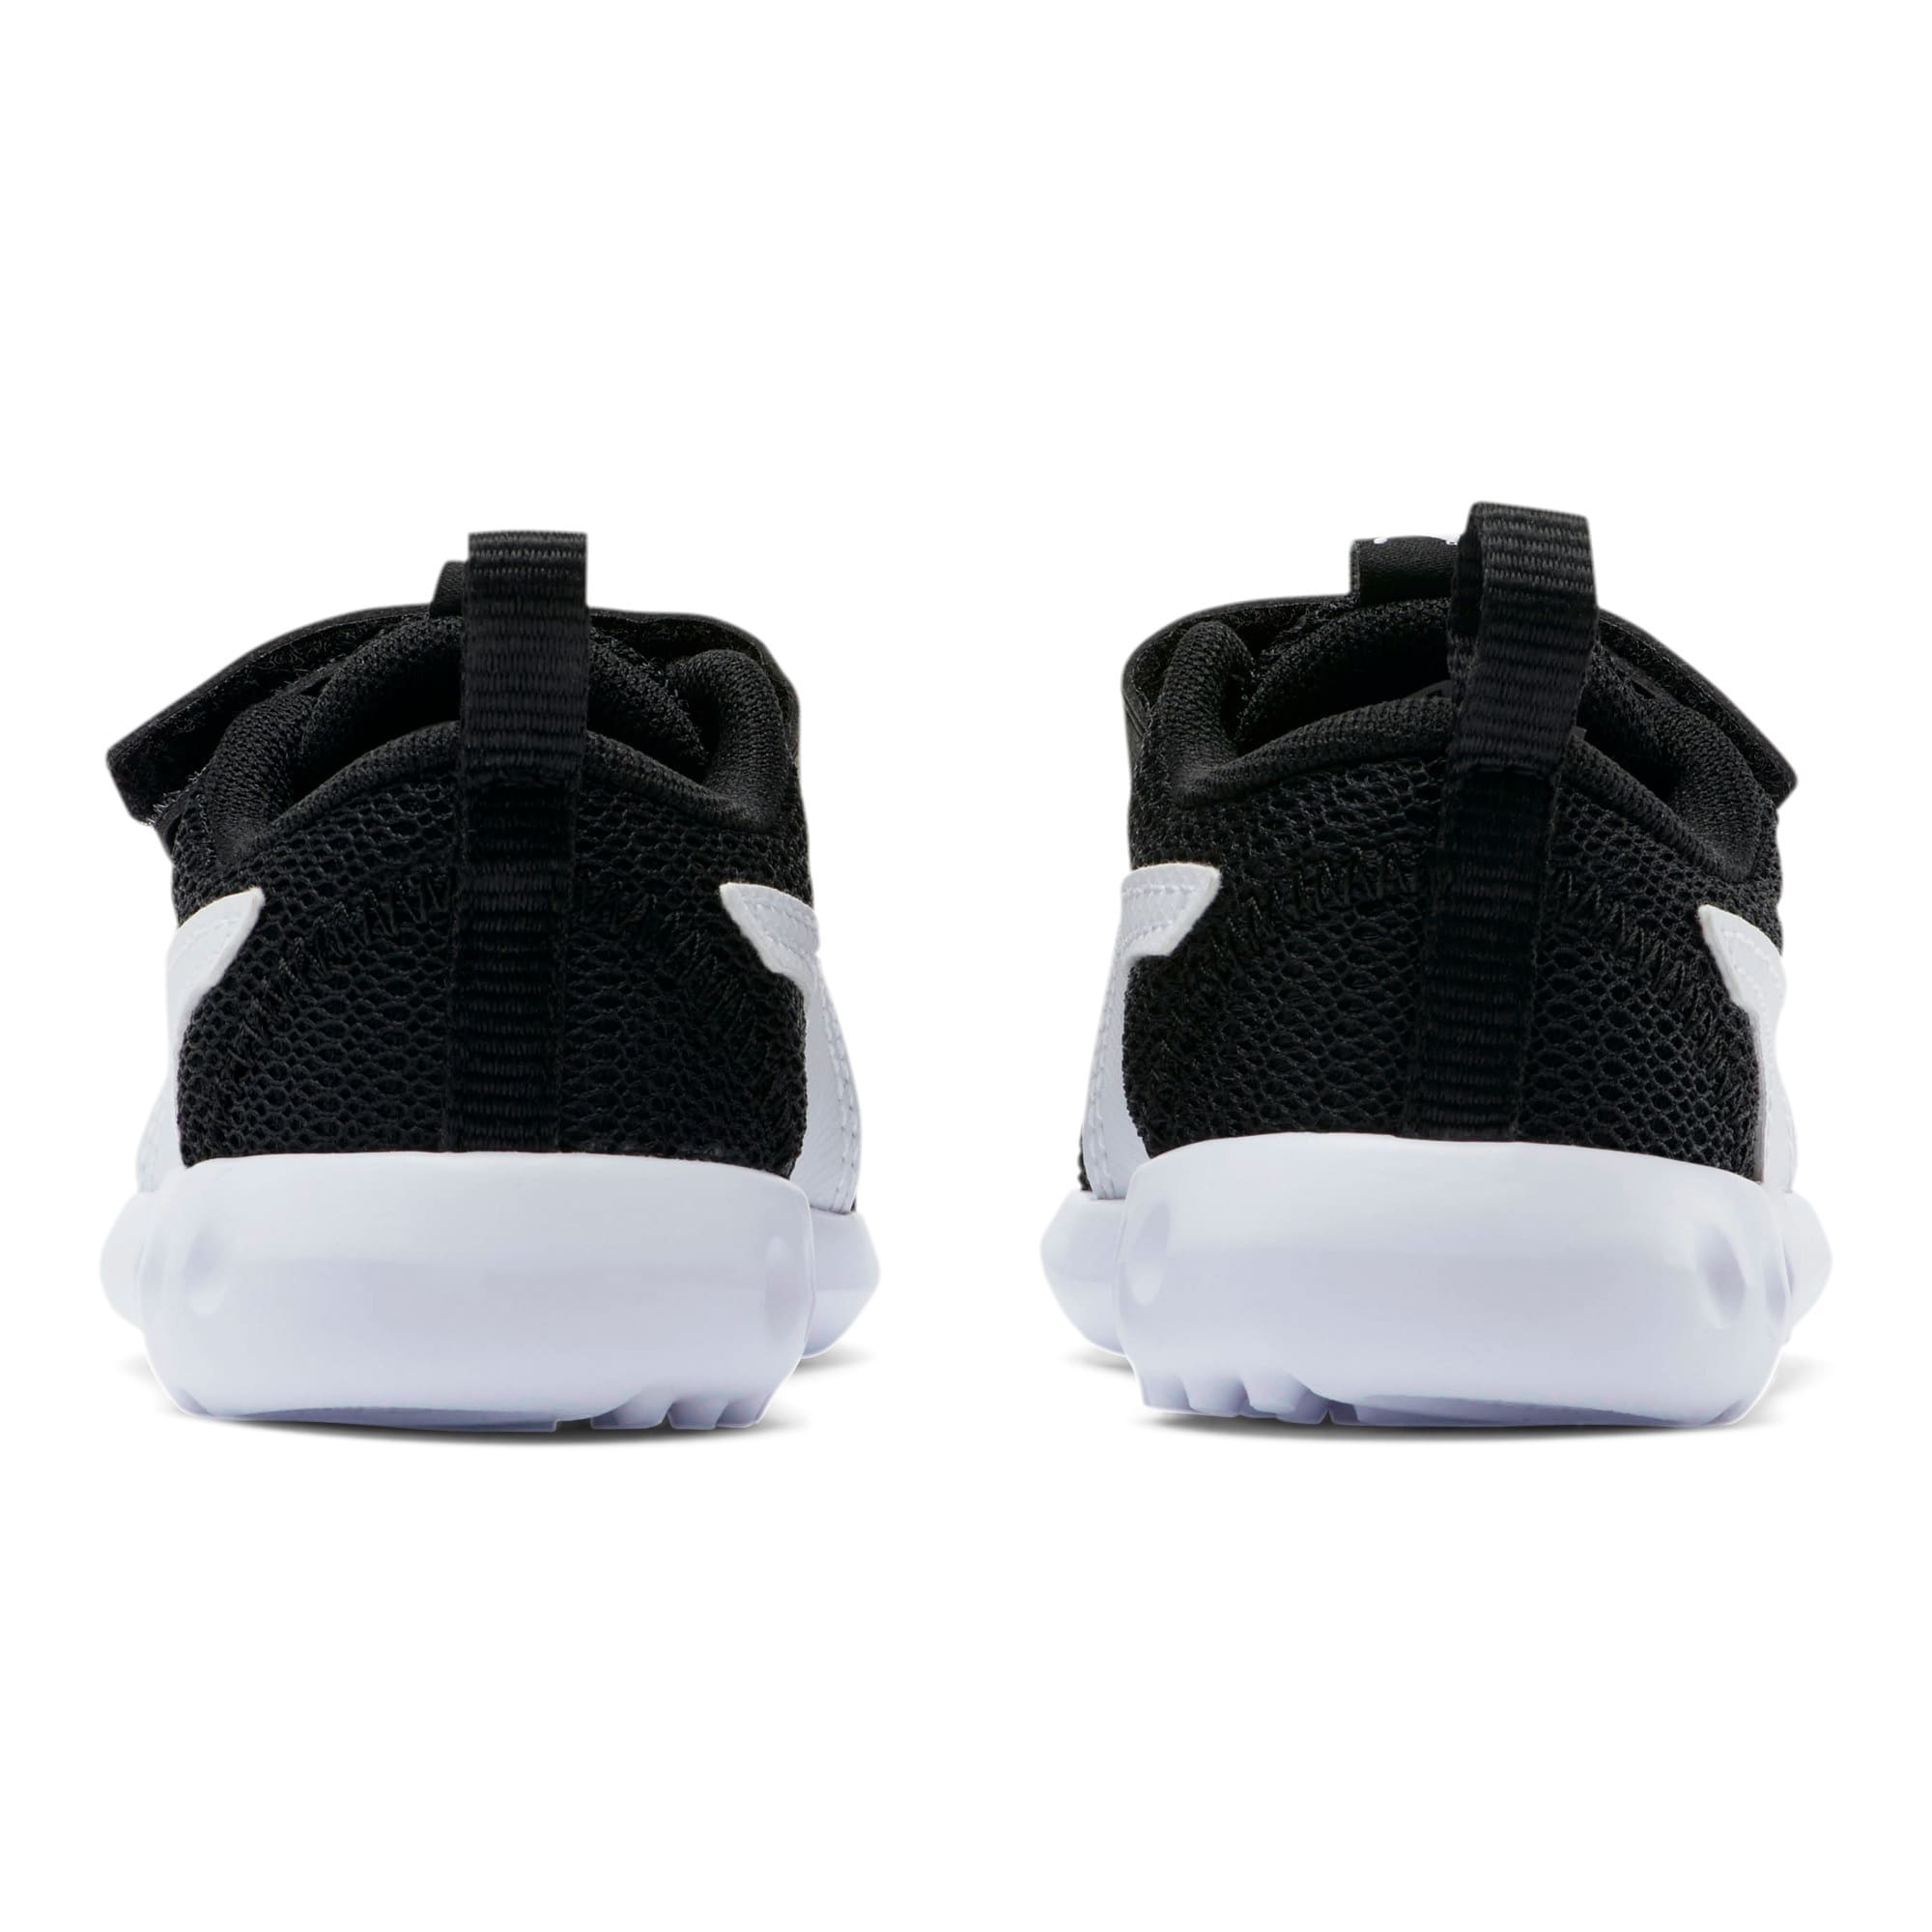 Thumbnail 4 of Carson 2 Toddler Shoes, Puma Black-Puma White, medium